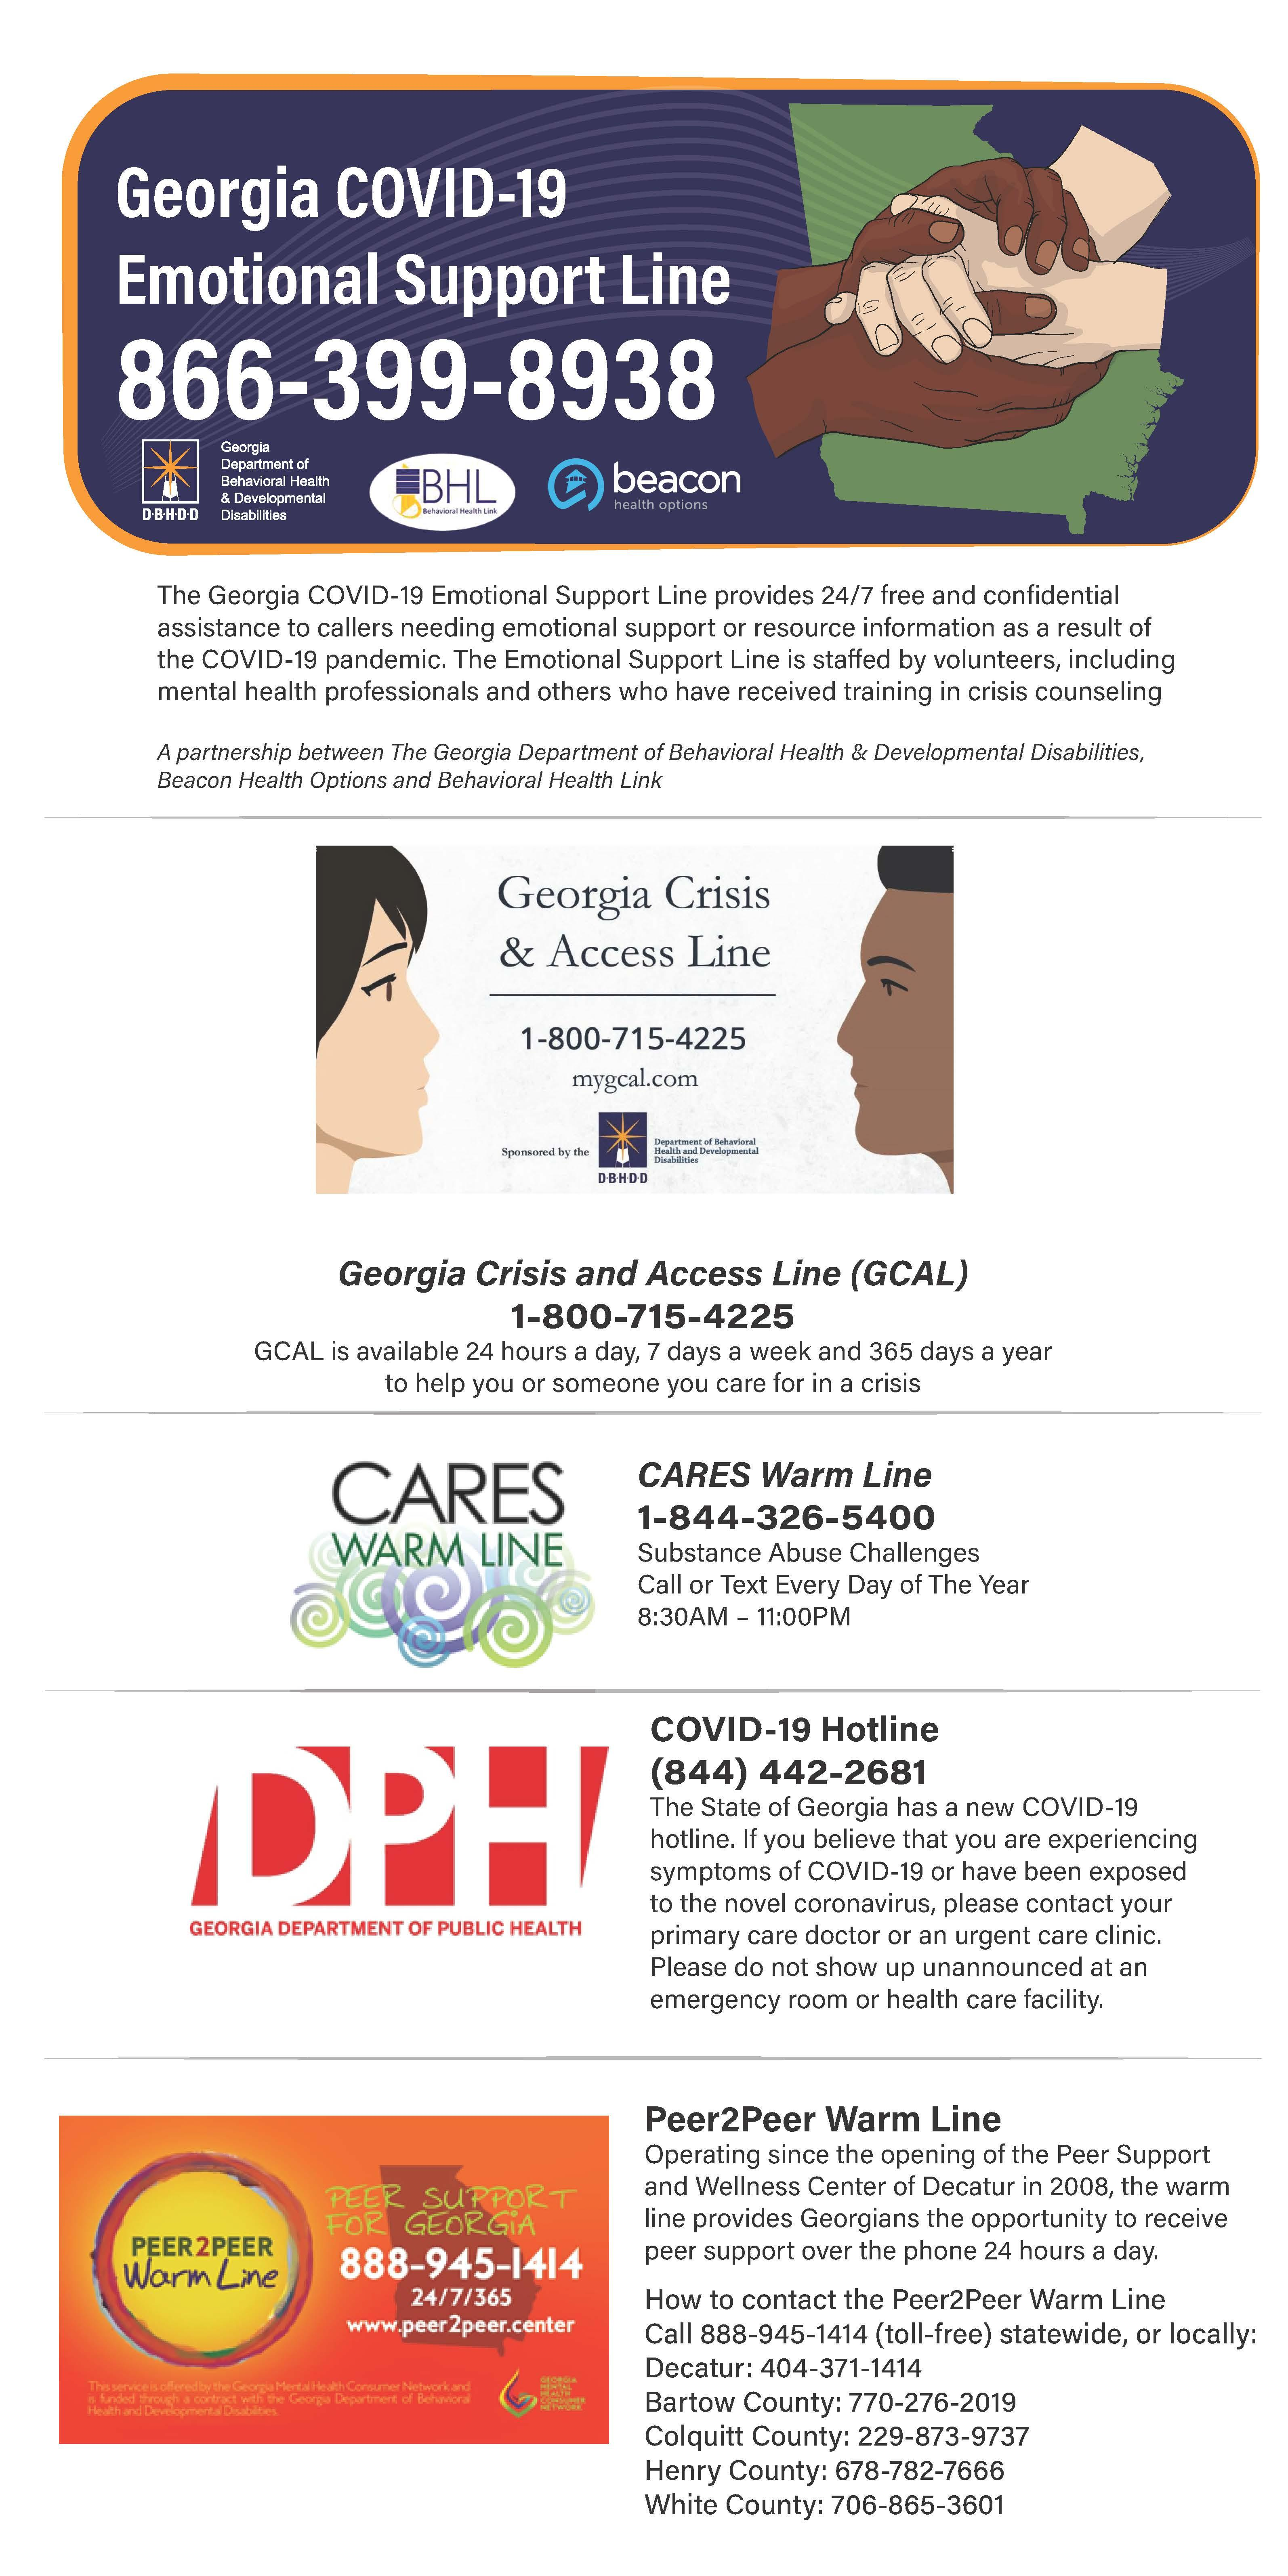 Georgia Emotional Support Line Information